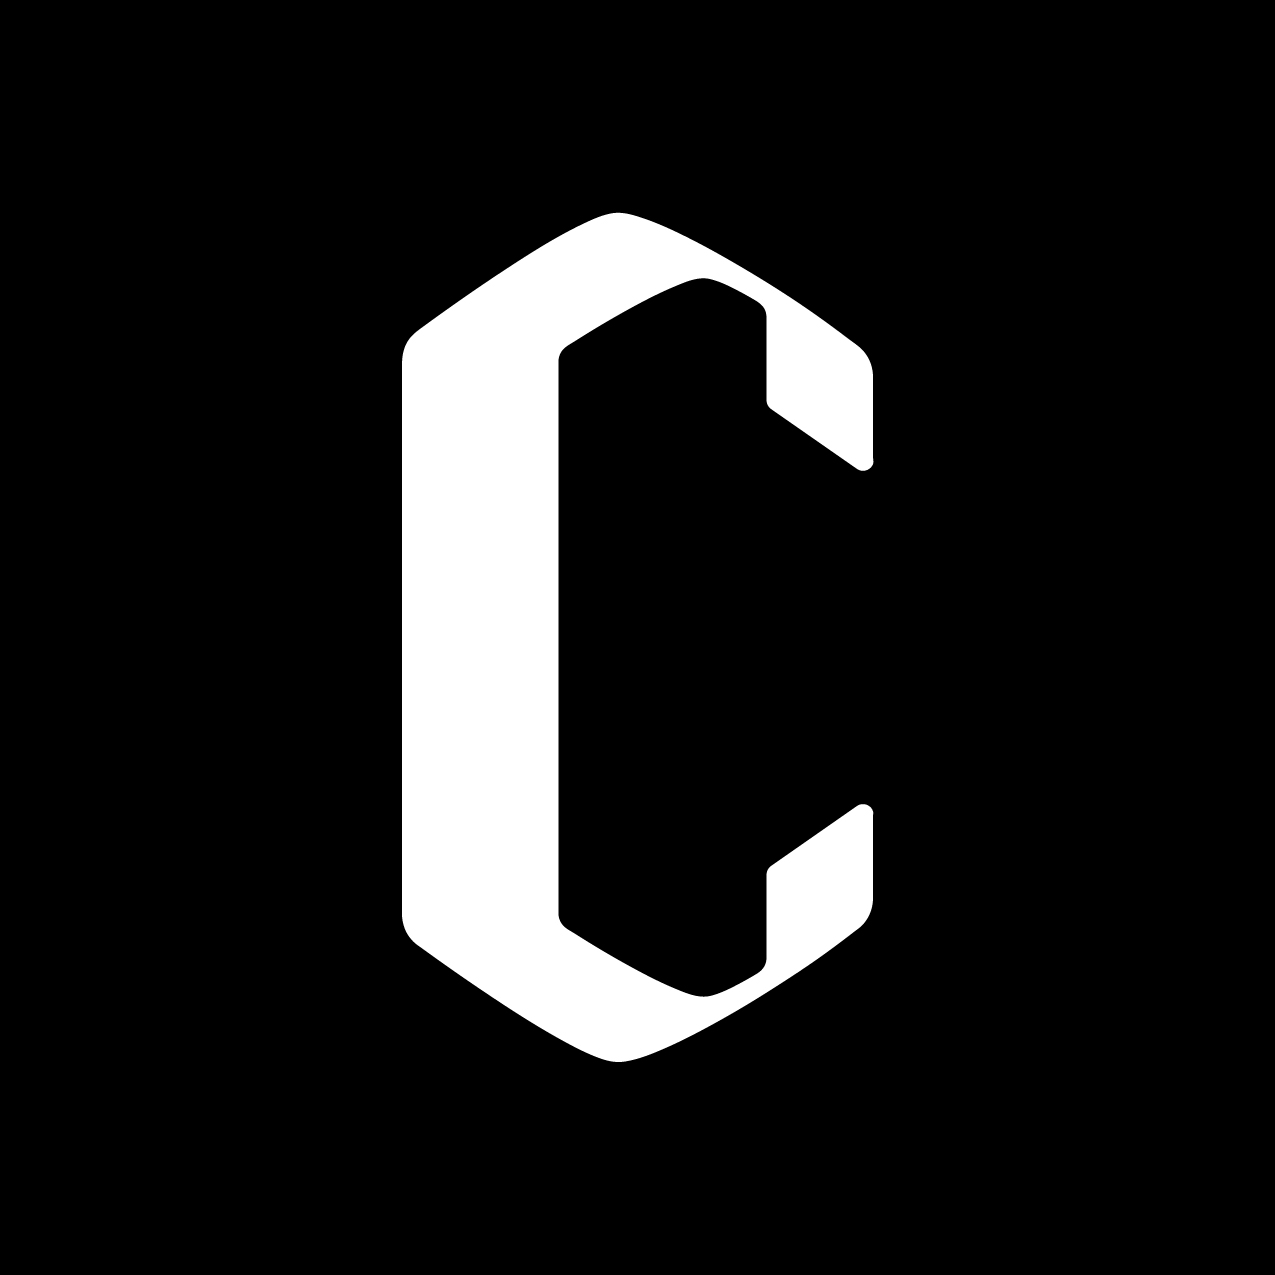 Letter C2 design by Furia